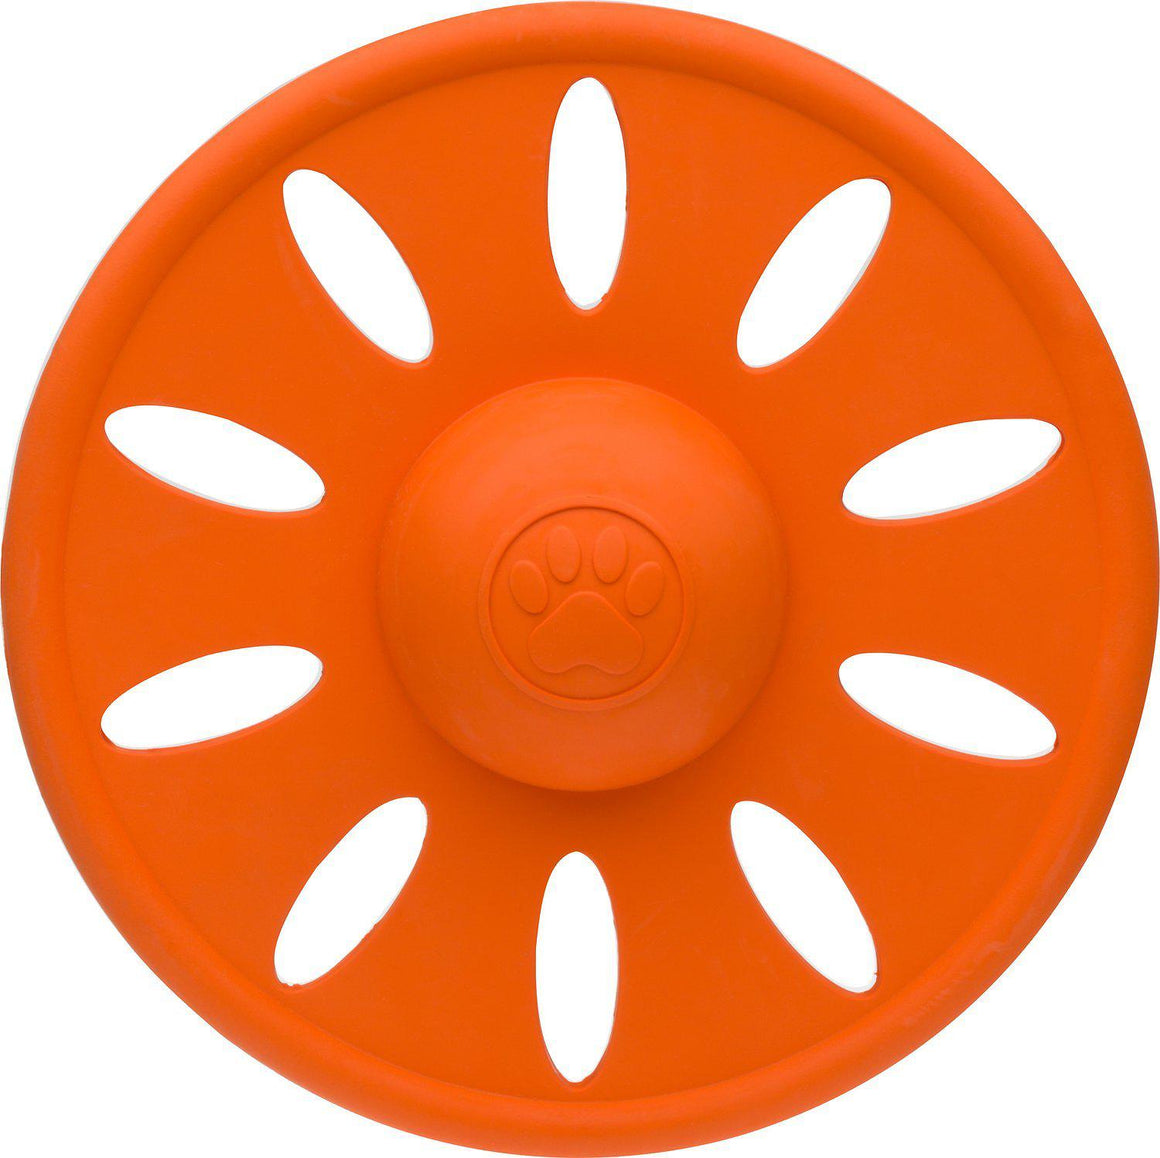 JW Whirlwheel Flying Disk Dog Toy-Le Pup Pet Supplies and Grooming